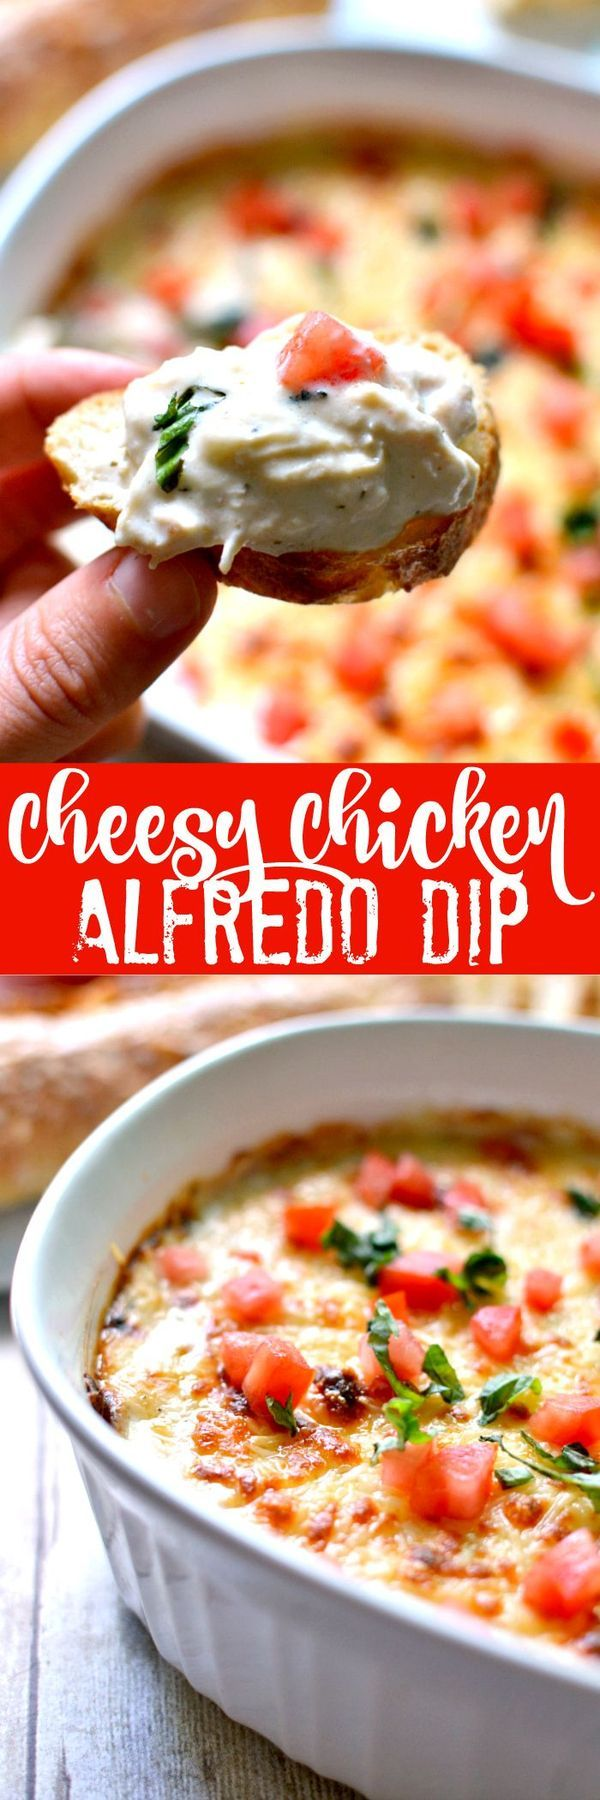 2 cup Chicken. 1 Basil, fresh. 1 Tomato. 1/2 cup Alfredo sauce. 1 (8 oz. package Cream cheese. 1 cup Mozzarella cheese. 1/2 cup Parmesan cheese, grated.